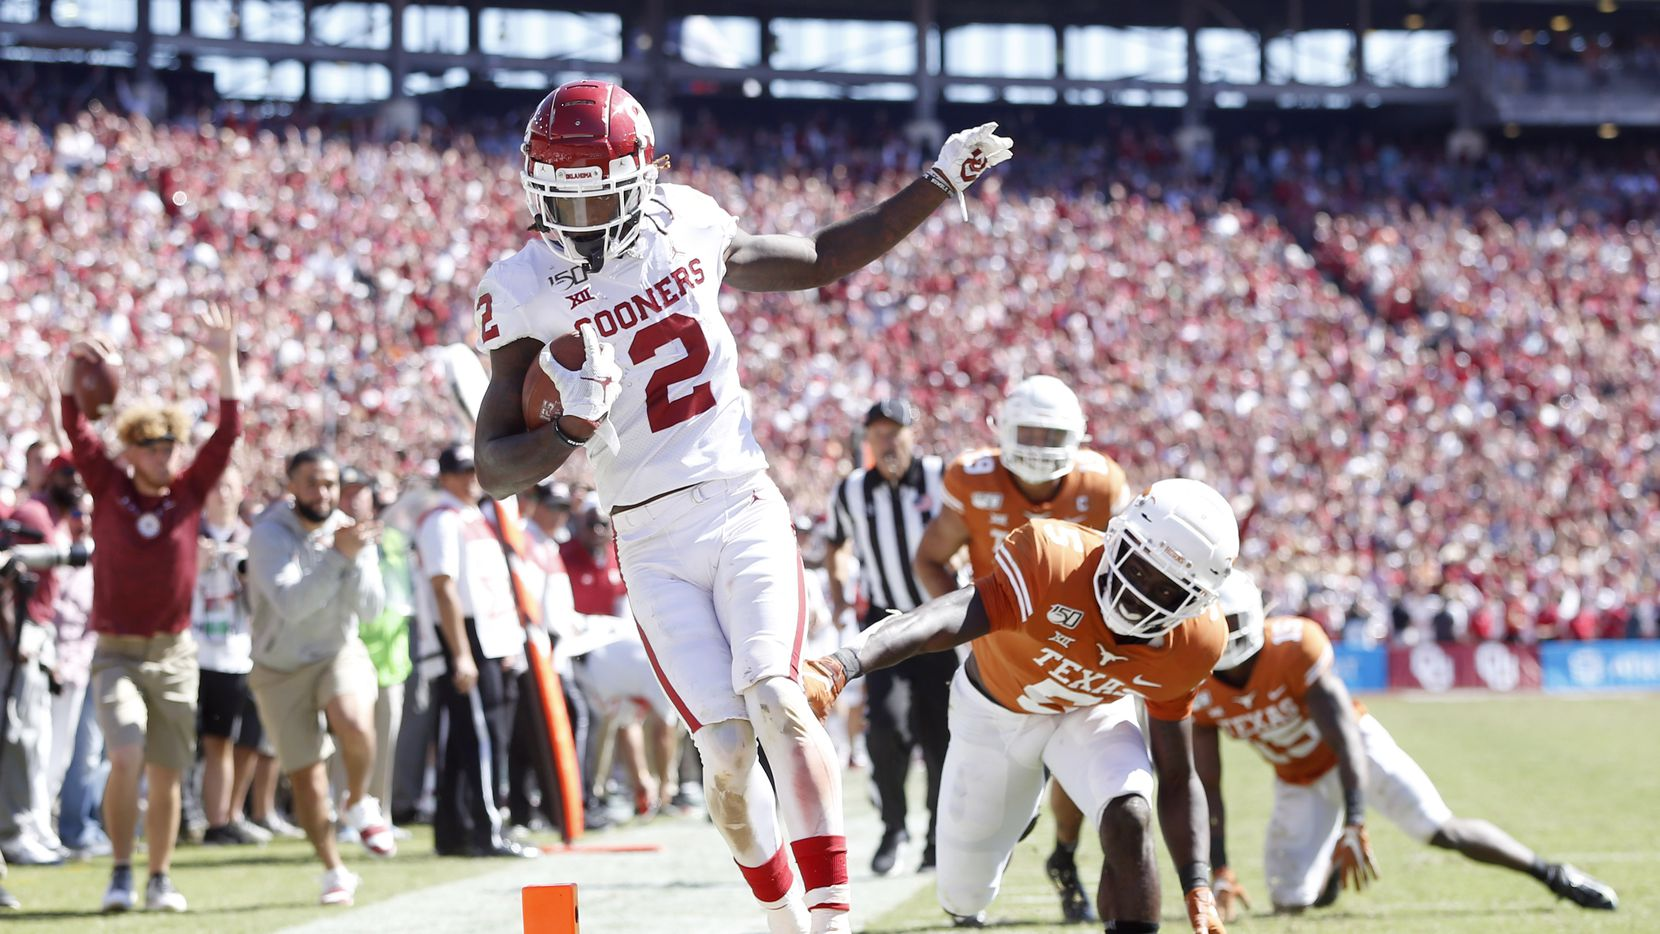 FILE - Oklahoma wide receiver CeeDee Lamb (2) scores a touchdown after beating Texas defensive back D'Shawn Jamison (5) during the second half of the Red River Showdown at the Cotton Bowl in Dallas on Saturday, Oct. 12, 2019.